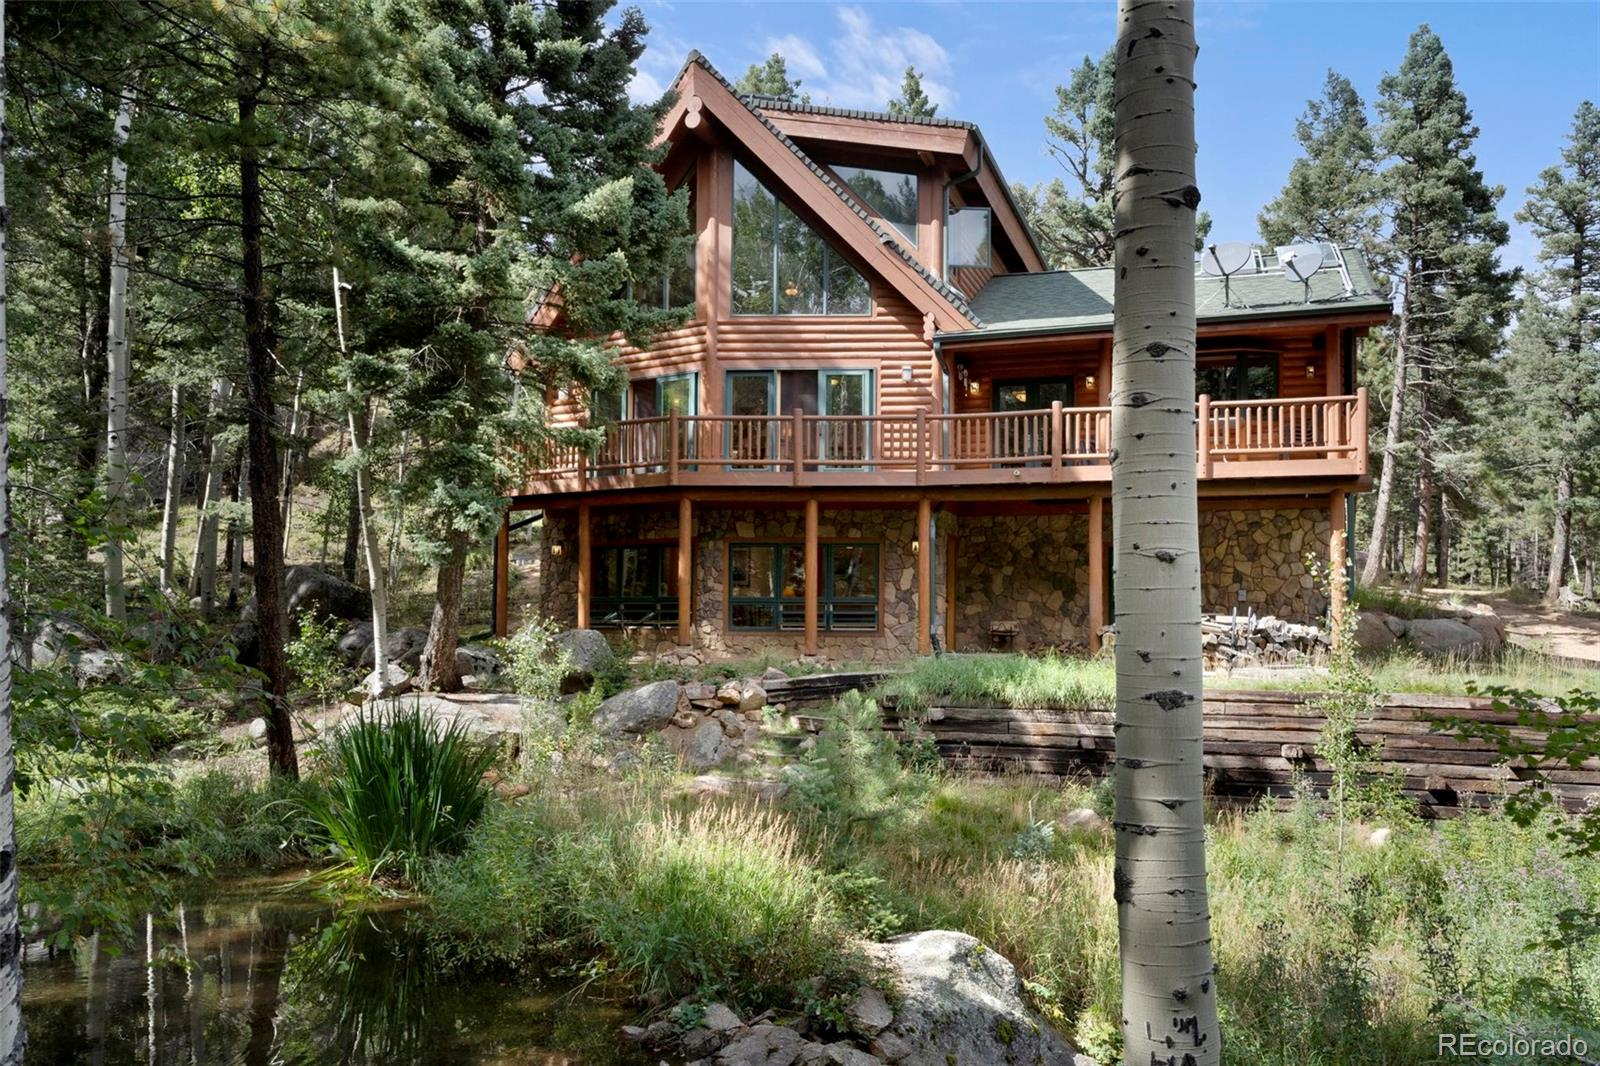 This Extraordinary Log Home, nestled in the Aspen trees above a pond in beautiful Crystal Park. Stunning architecture and mountain character throughout. Gracious Mountain living, blending native materials with modern design elements. Large deck with wonderful treetop views and views of the stream, pond on property. This 3 Bedroom, 4 Bathroom residence includes Gourmet Kitchen with Live Edge Granite Counter Tops, Custom BuiltIn Counter Seating, Custom Tile and Hardwood Flooring with Radiant Heat. Other Features include: Solar Panels, Heated Garage, Newer Furnace, Newer Water Heater, Newer Boiler, Fixed Gas Fireplace, All Bathroom Fixtures oil Rubbed Bronze, Heated Toilet Seats in 3 out of 4 bathrooms, Newer nest System Throughout, Wood Stove in Family Room and much more! This Log Home is the Perfect Mountain Retreat for your family and friends. Enjoy the changing seasons. Mature aspens, pines and wildlife views from every room. Rare Stream and Pond on this private location. Living room features Hardwood Flooring, Pella custom High-Efficiency Windows, Lodi Wood Burning Stove and Cathedral ceilings with wall of windows soaring 2-stories. Gather around the fireplace in the Family room directly off the well-appointed Gourmet kitchen. Attention to detail throughout. Main level also includes Master Bedroom, adjoining 5-piece Bath with Jetted Tub and Large Walk-In Shower…Also on the main is a 1/2  Bath and Laundry. Loft Bedroom includes 4-piece Bath and Separate Sitting Area which creates the peaceful feeling of living in the tree tops. 1,700 sq ft of downstairs living with the 3rd Bedroom, 3/4  Bath, Exercise Area and Walkout to Garden Level and Pond. Watch the birds, deer, turkeys, foxes and more. This true Log home in an absolutely spectacular setting, is worthy of it all! Crystal Park is a private, four-season destination situated on 2,000 acres. Amenities include fishing, Swimming Pool, Guard Gate manned at various hrs, Community Center, miles of Trails, & much more.